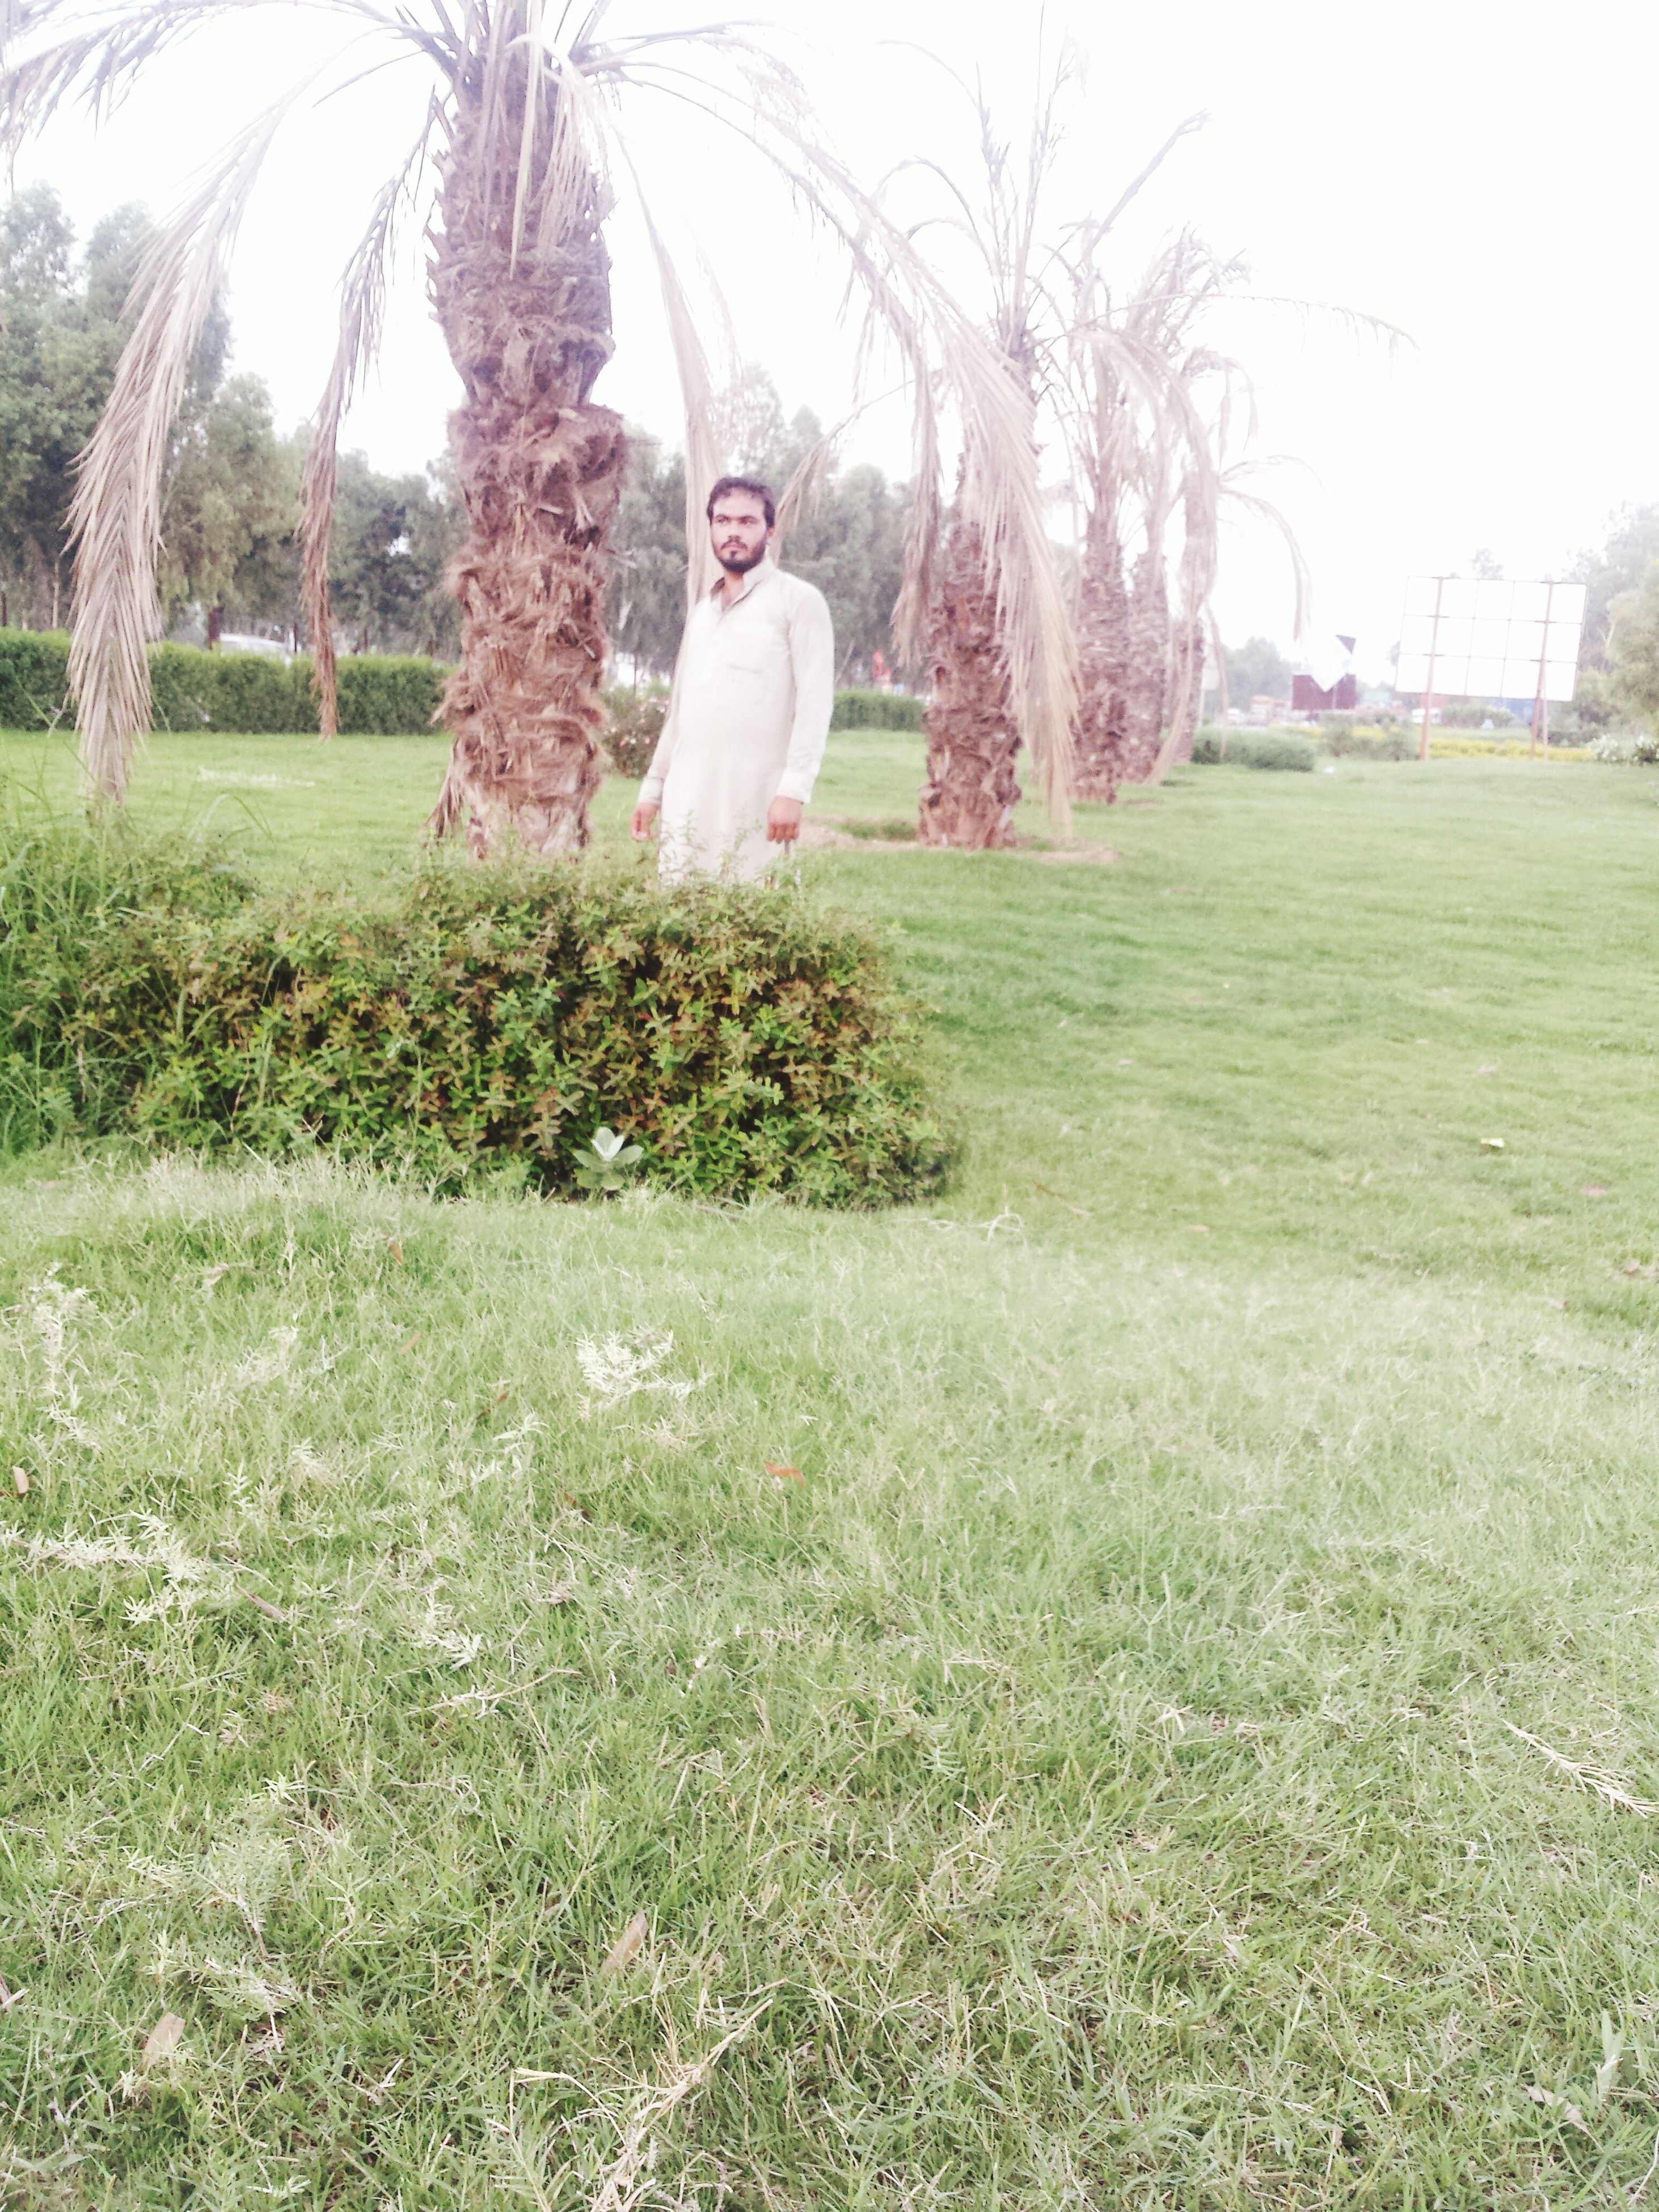 grass, tree, lifestyles, field, leisure activity, person, full length, casual clothing, park - man made space, grassy, young adult, childhood, standing, green color, front view, day, growth, lawn